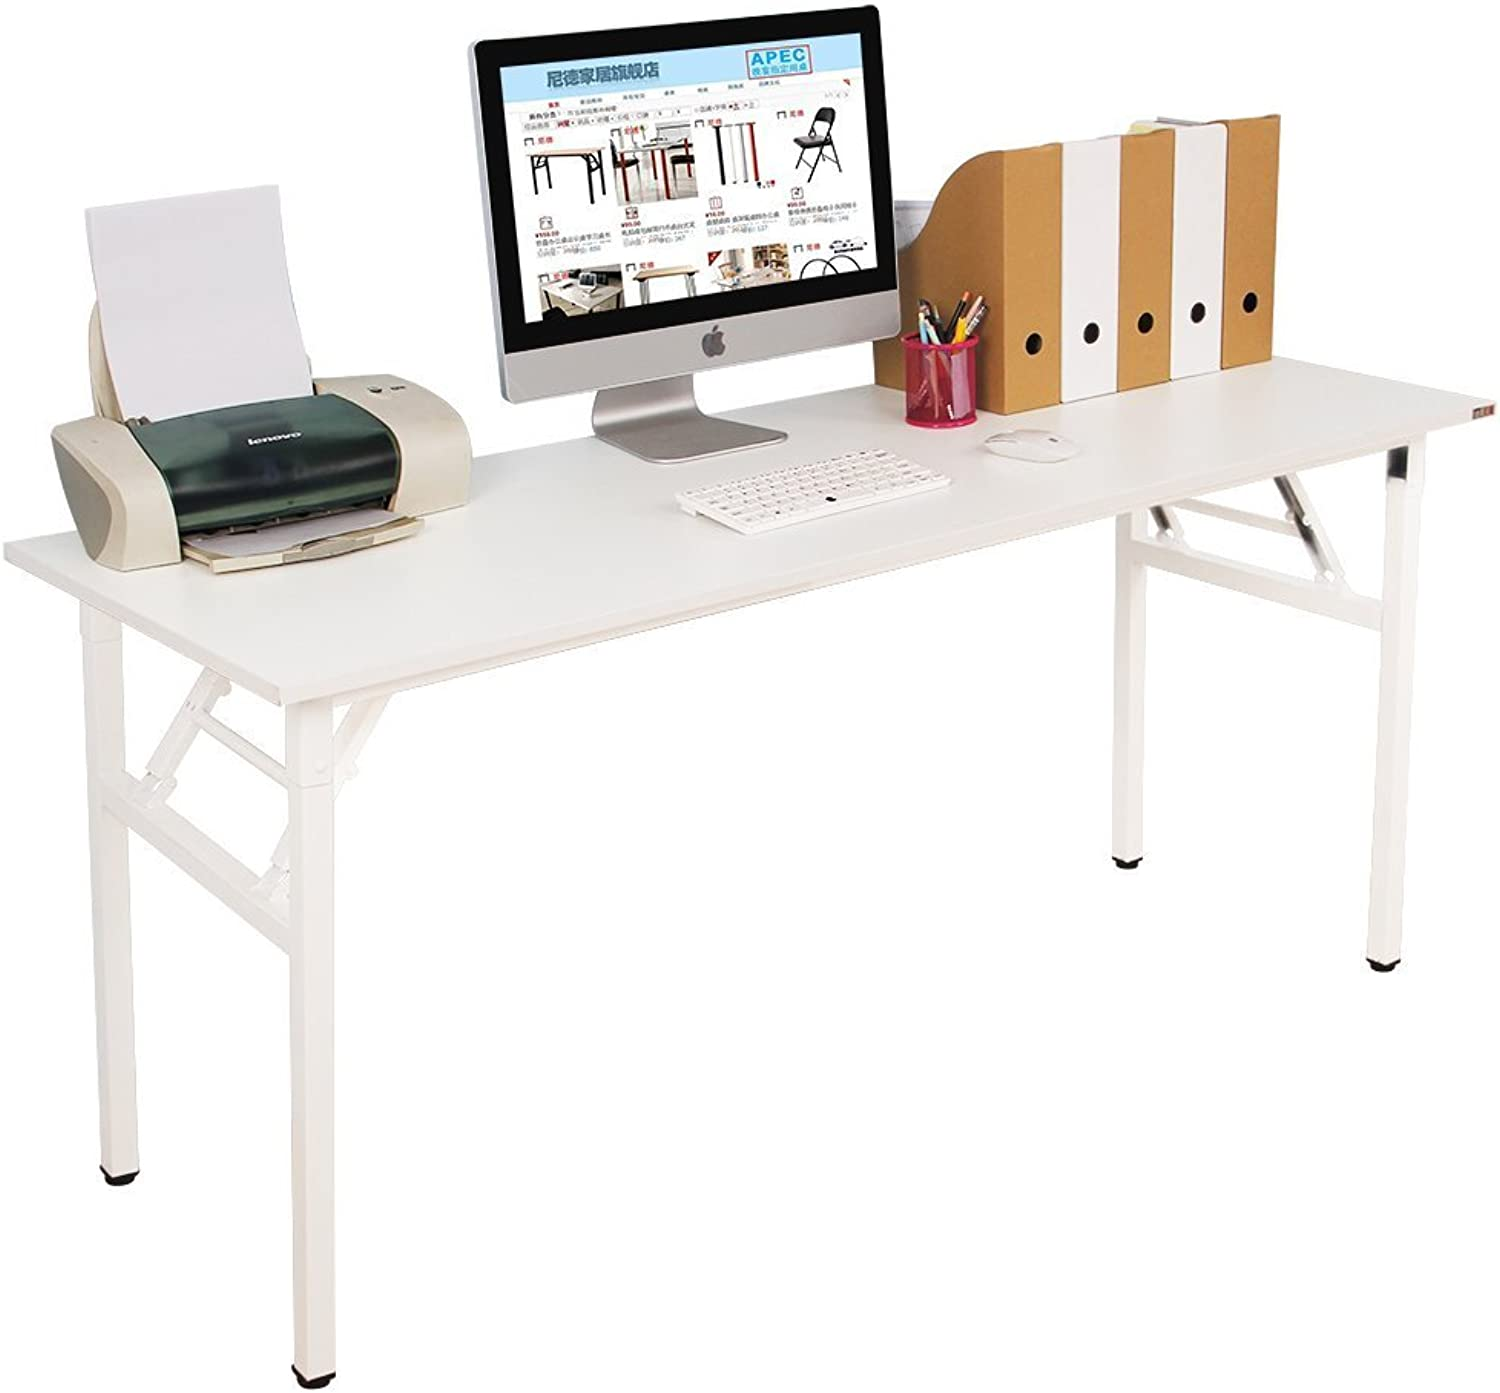 Need Computer Desk Office Desk 63  Folding Table with BIFMA Certification Computer Table Dining Table No Install Needed,White AC5DW-160-CA